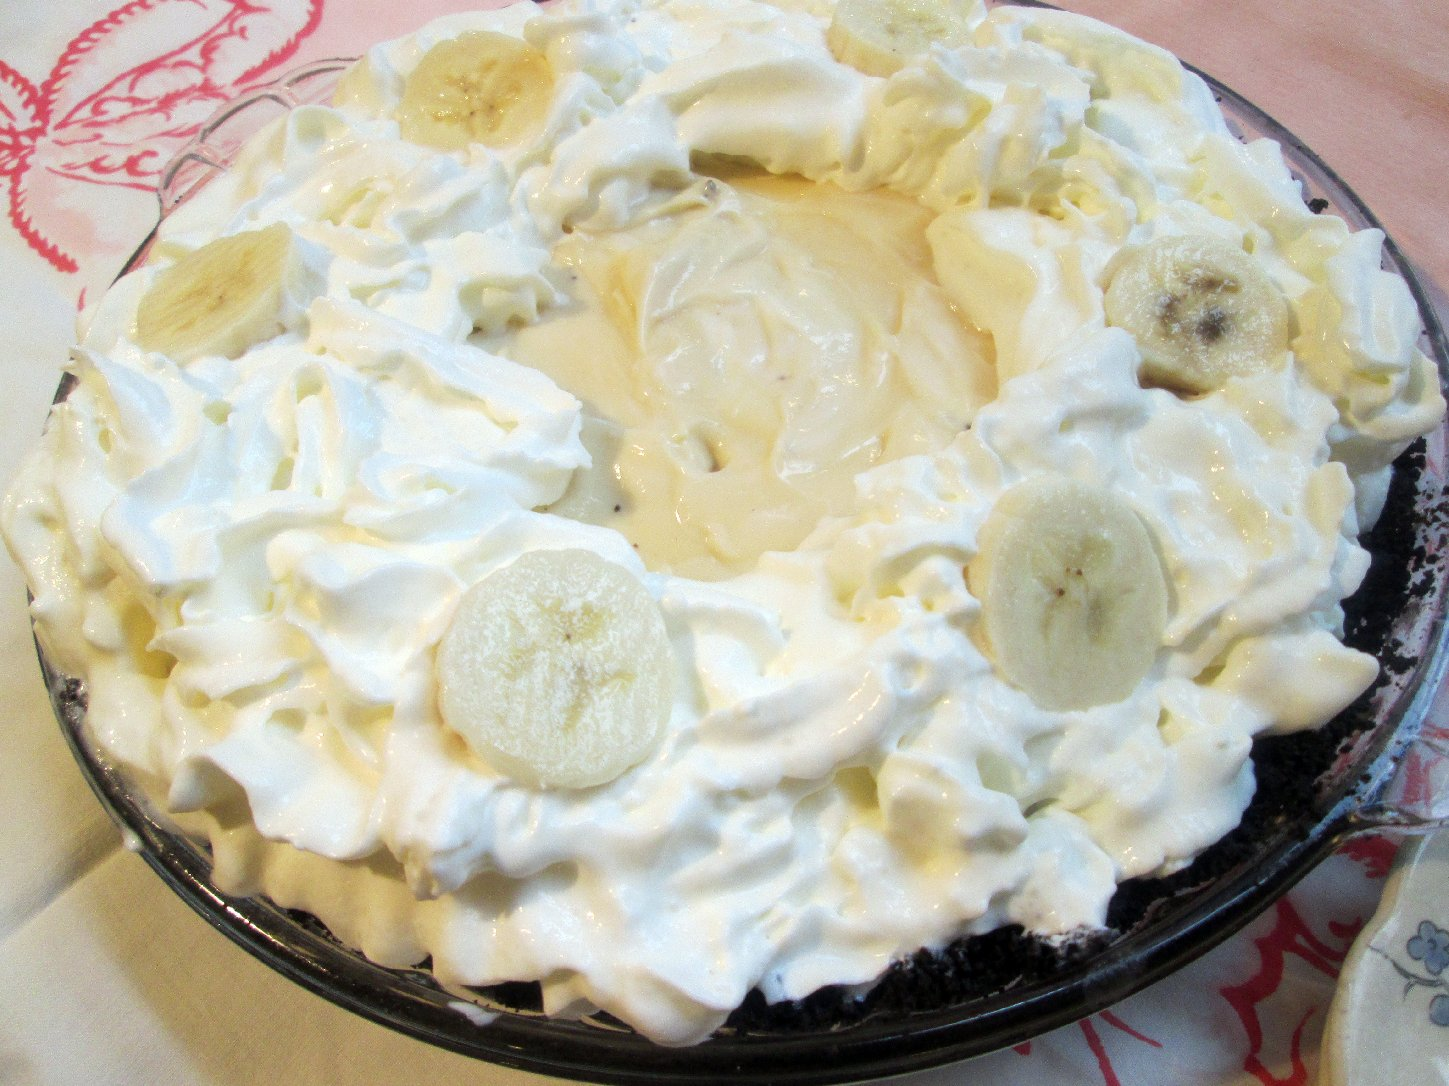 Banana Cream Pie. Photo: Laura B. Weiss/ NPR